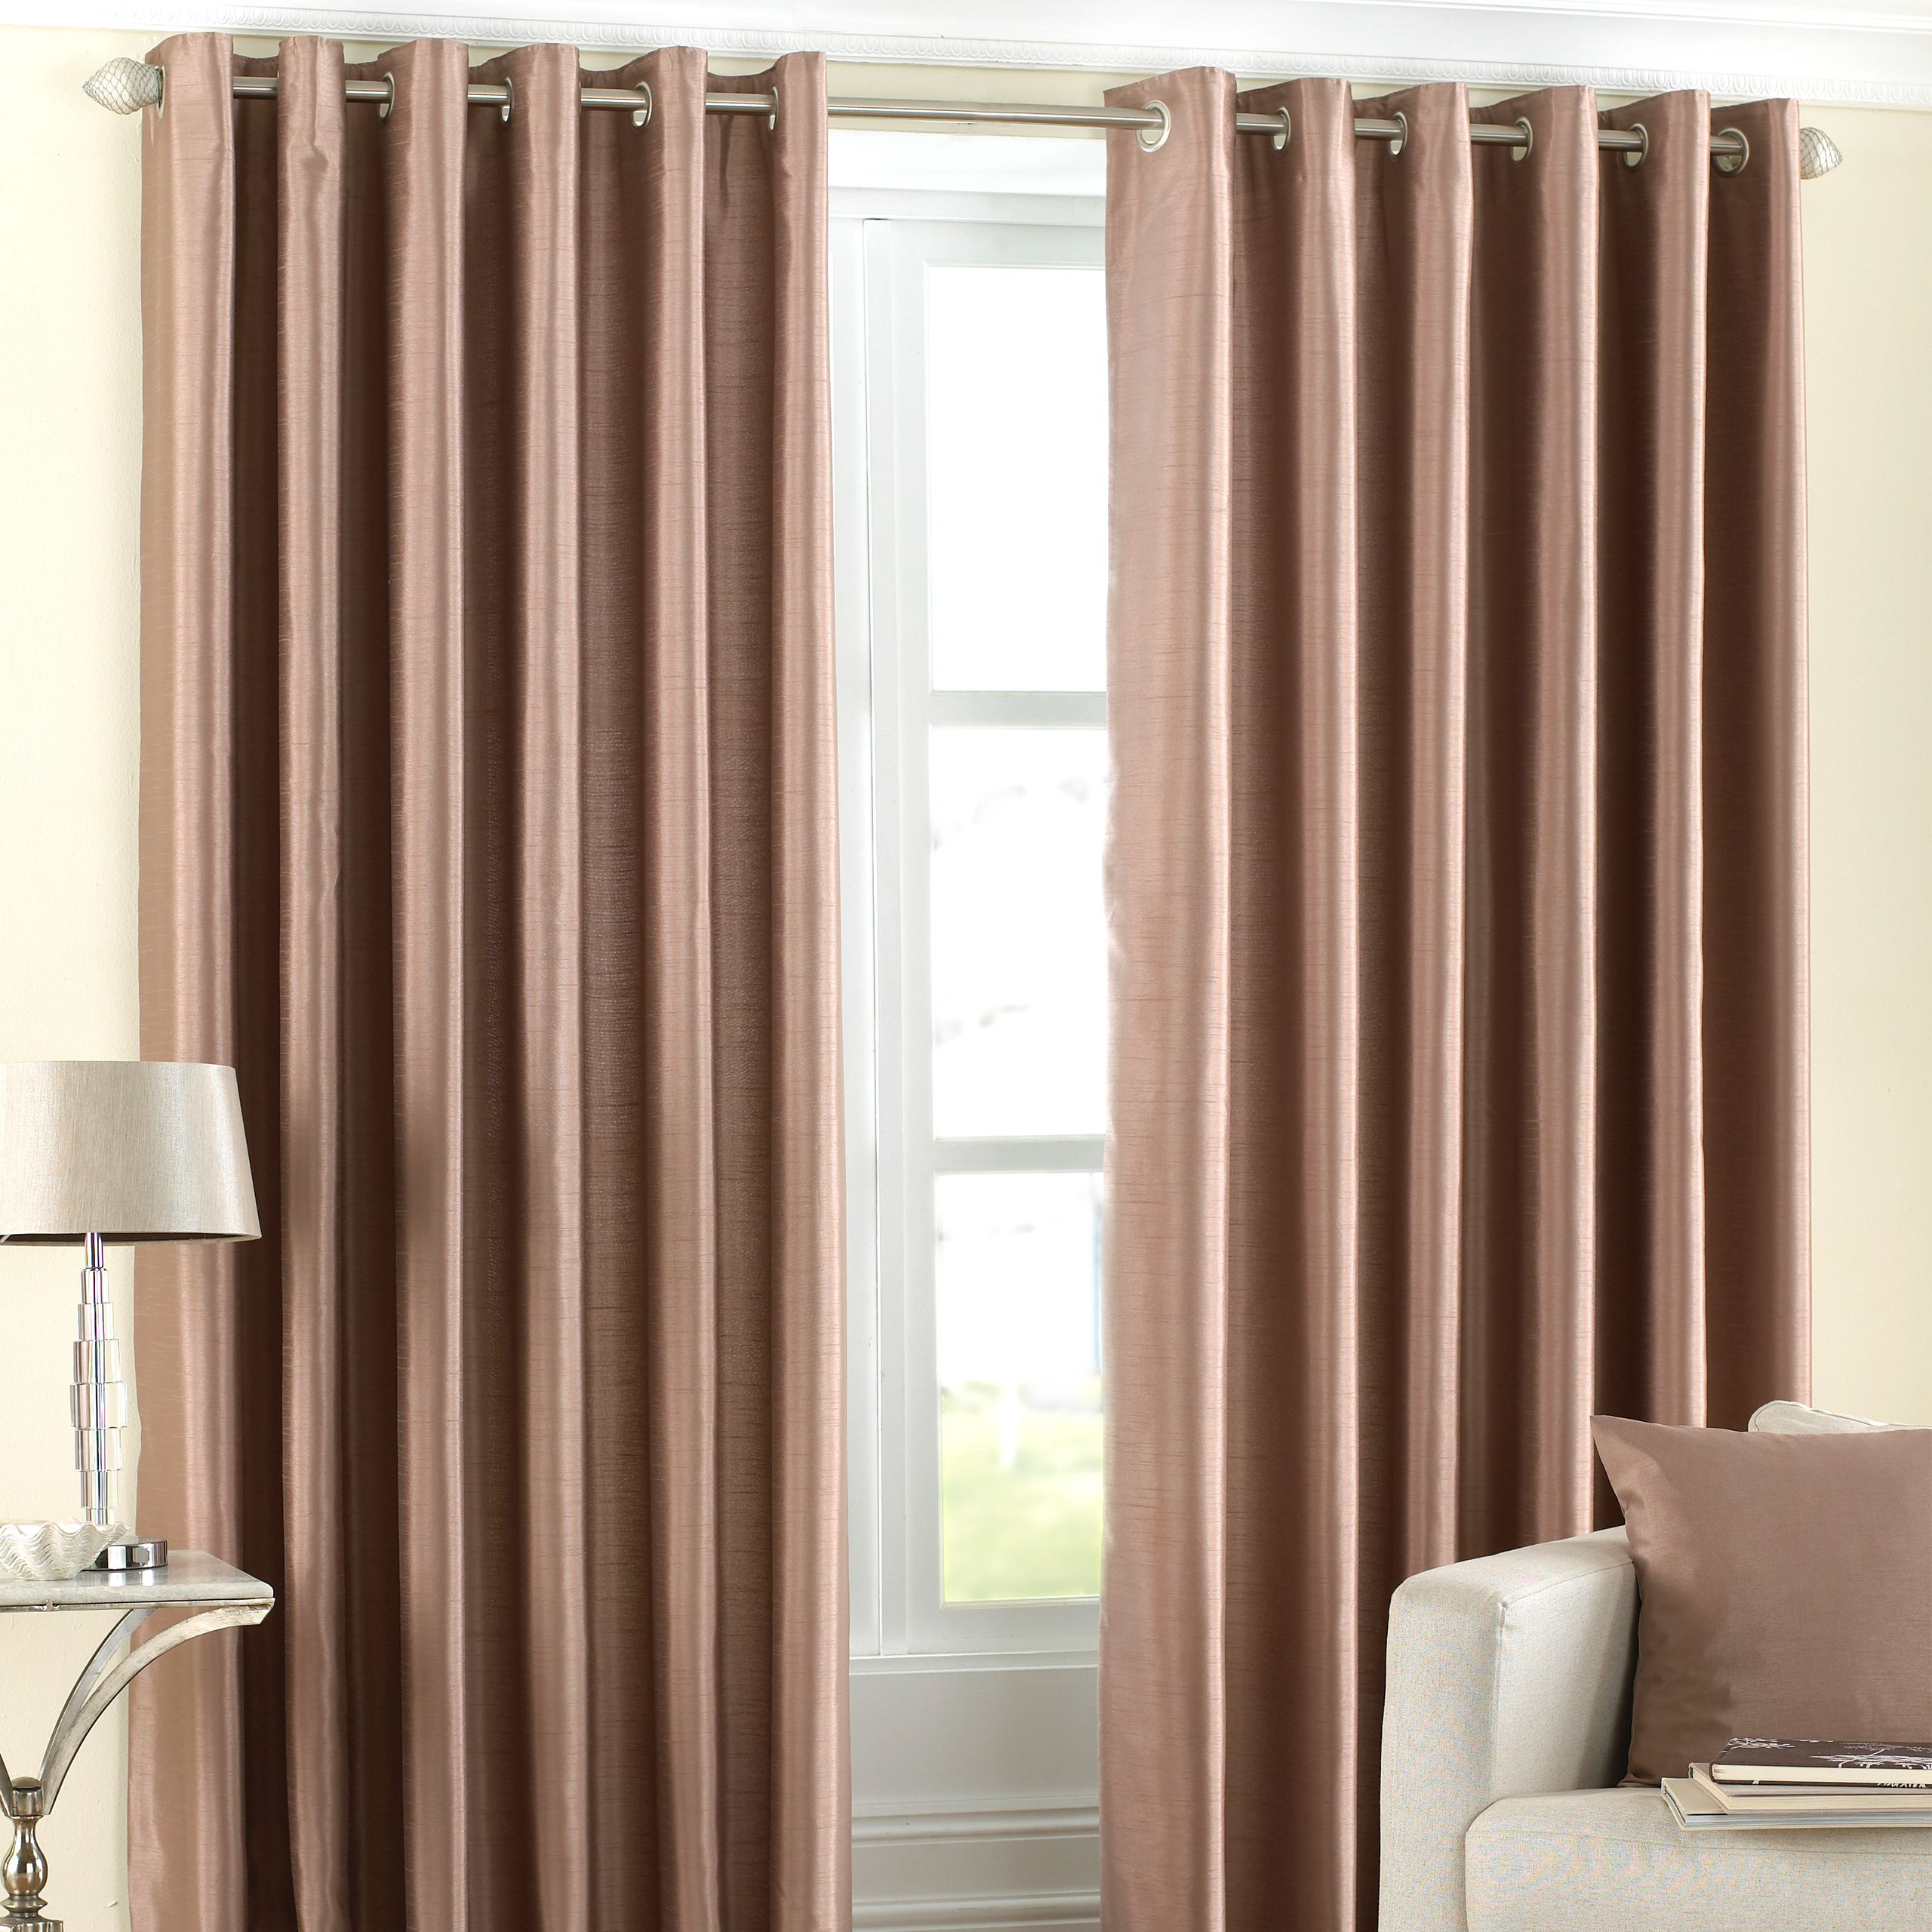 Fiji Silk Effect Eyelet Curtains in Latte